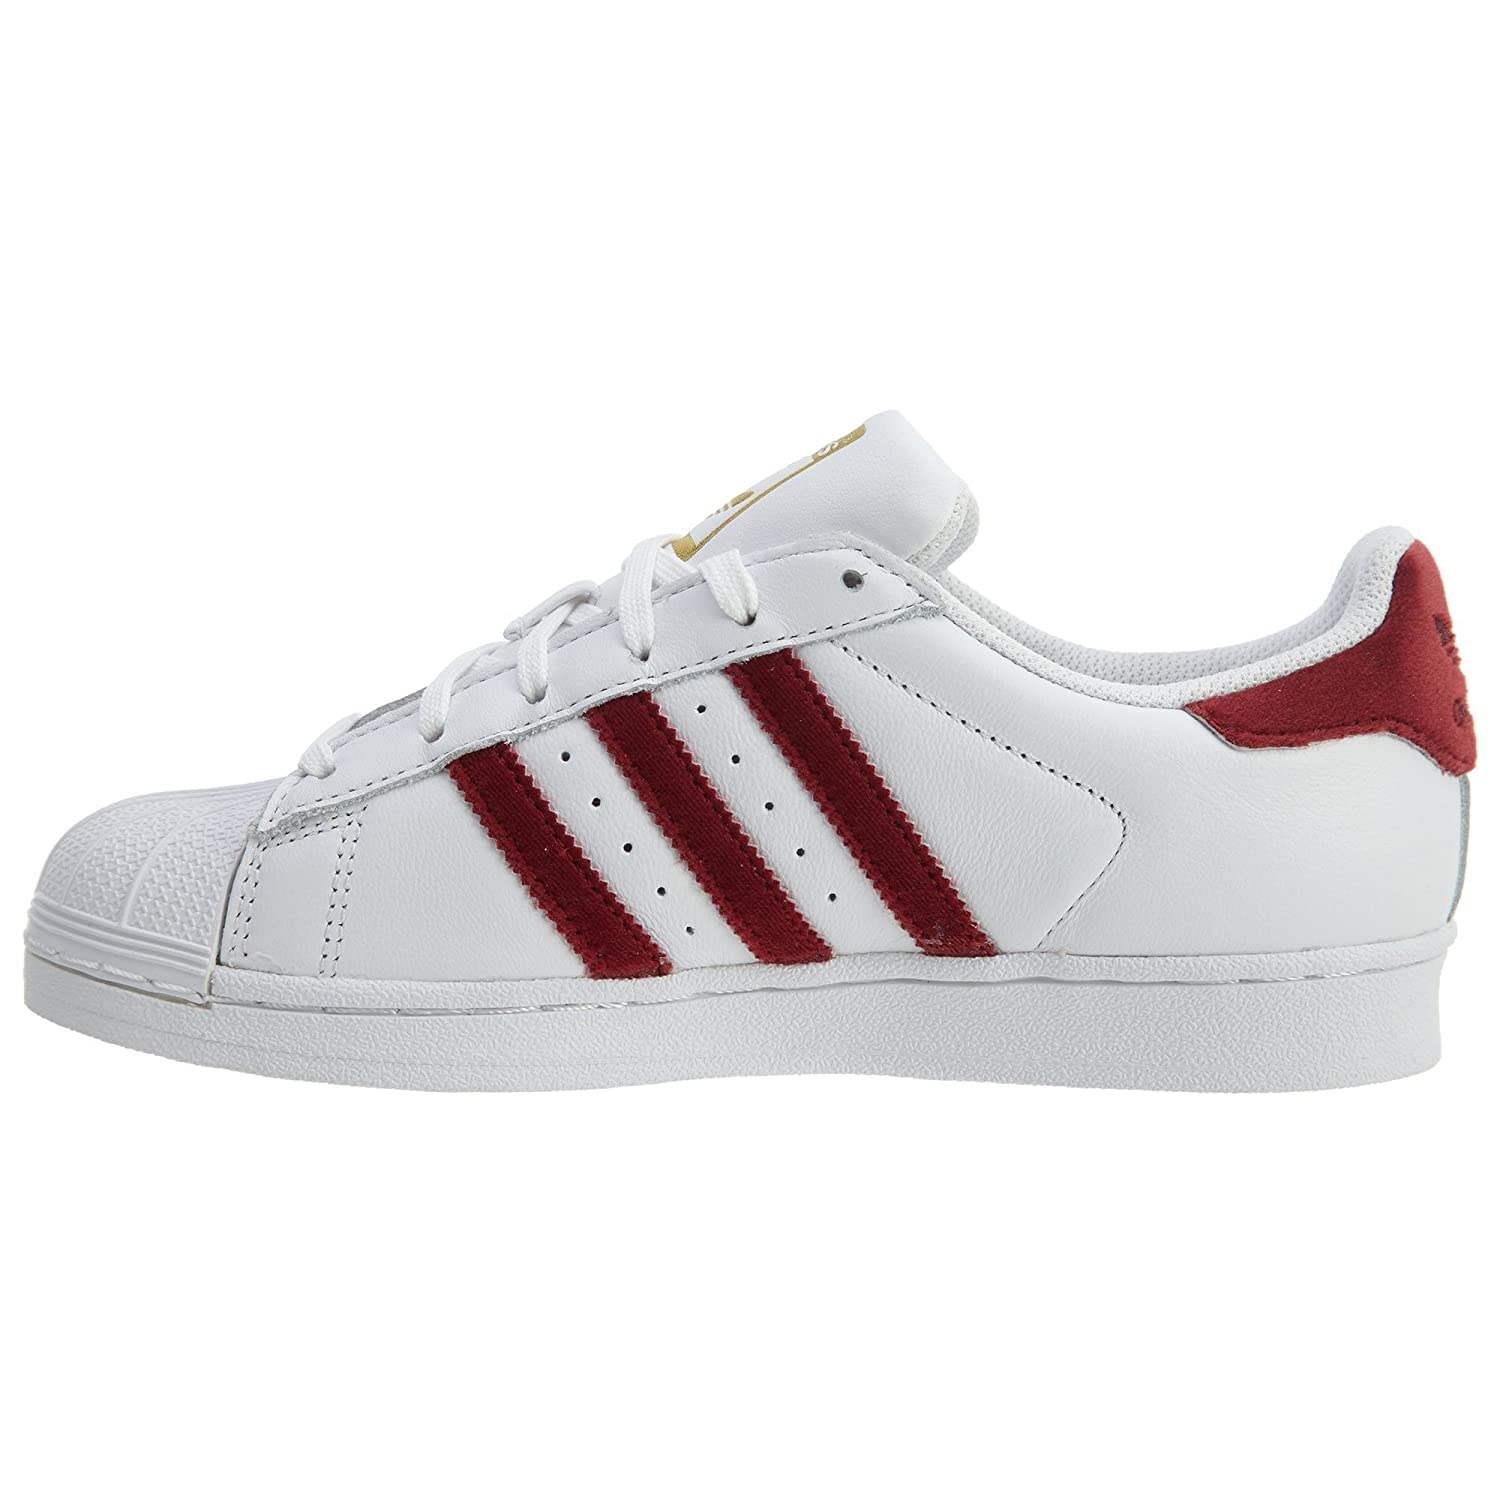 adidas Superstar W Womens Fashion-Sneakers AC7162 7 - Footwear White  Burgundy Footwear White  Amazon.co.uk  Shoes   Bags 30fbc2f5a6